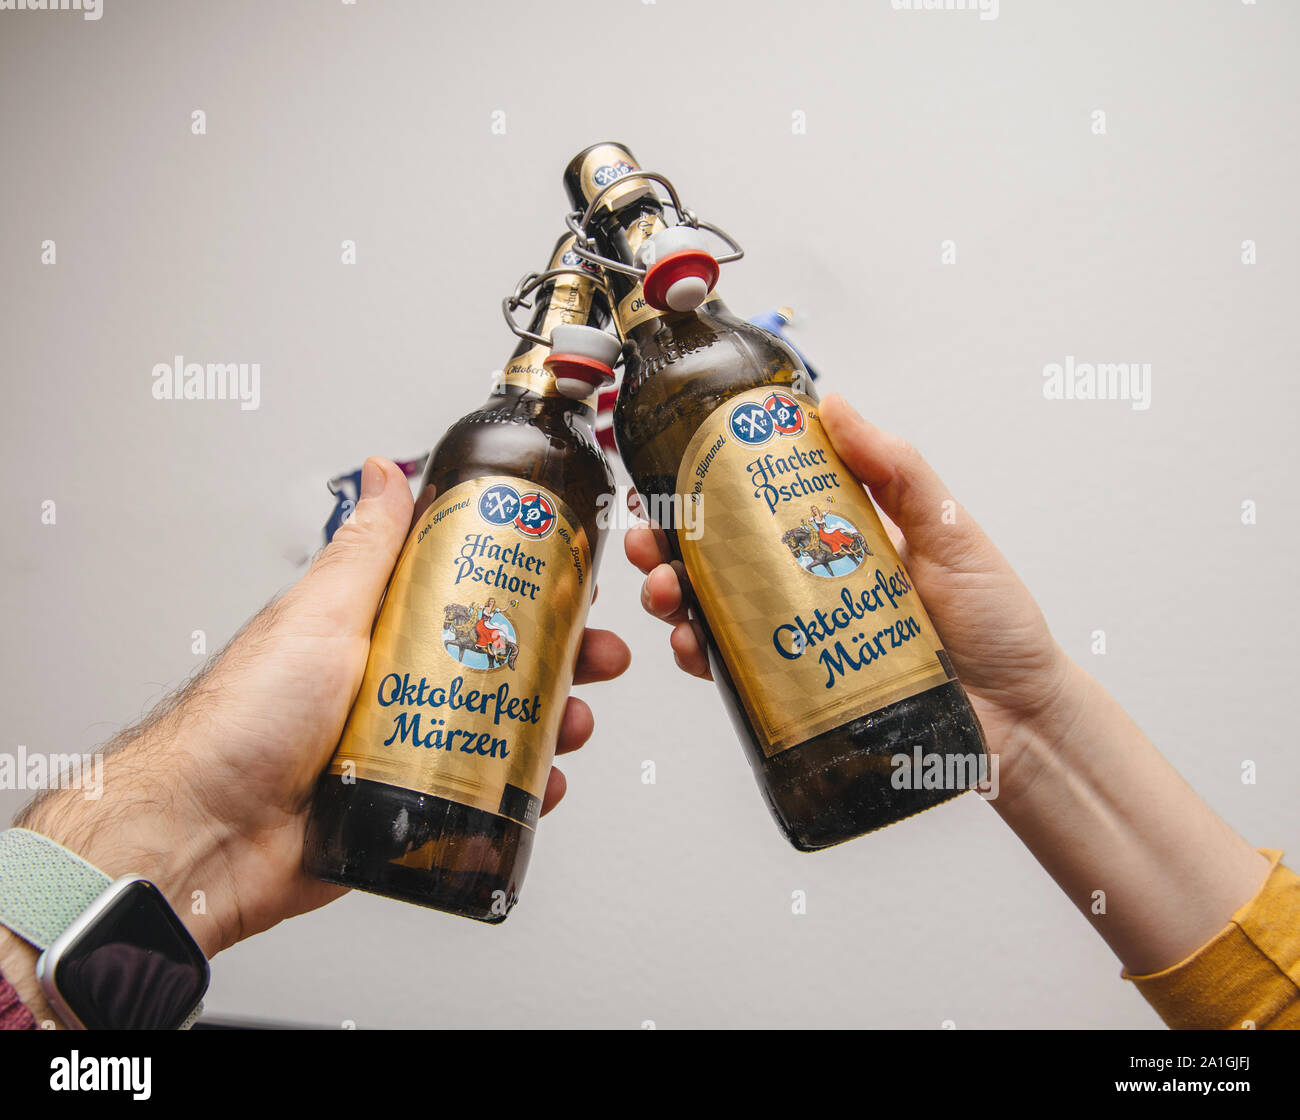 Munich, Germany - Mar 3, 2019: Male hand holding traditional Oktoberfest Marzen Pills beer against white background Stock Photo